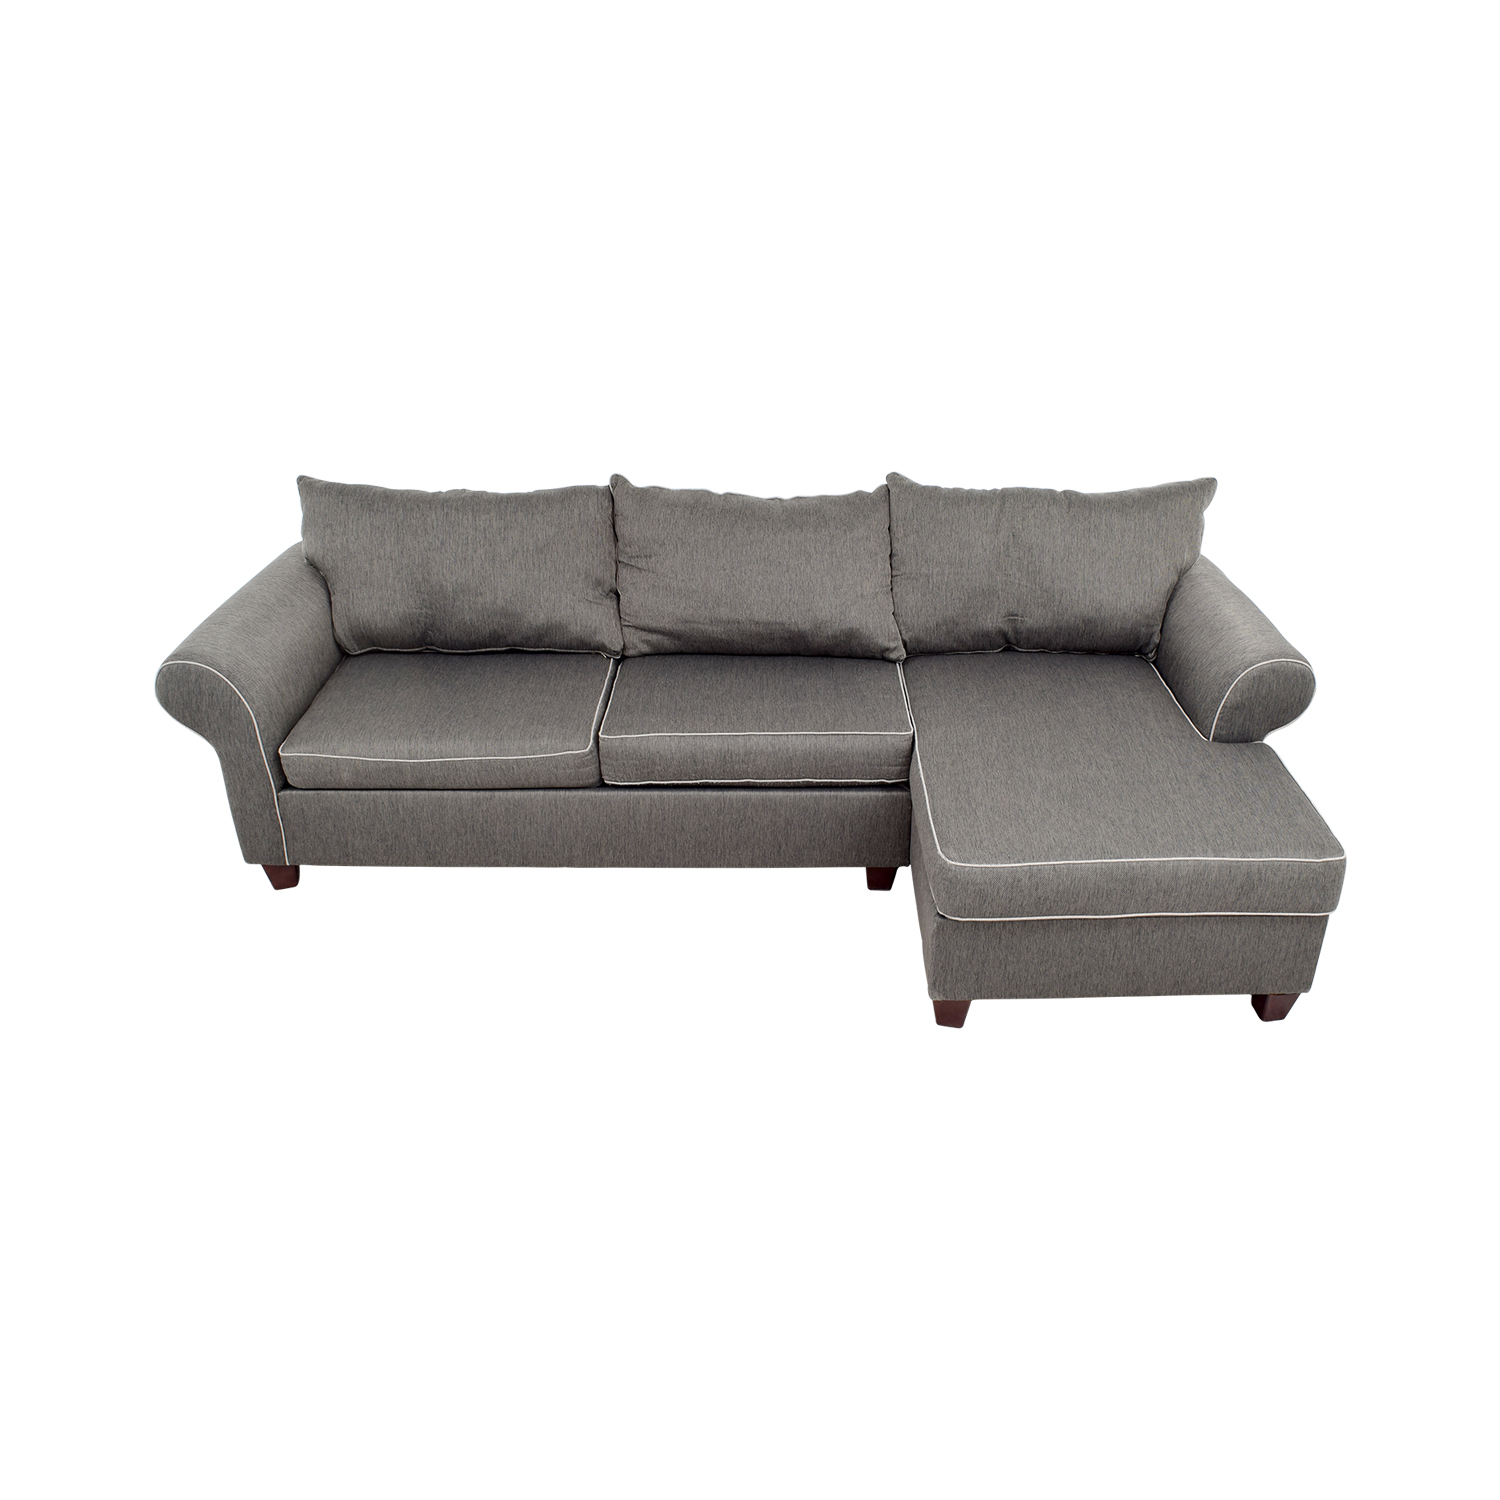 bobs furniture sleeper sofa everyday sleeping bed sectionals used for sale